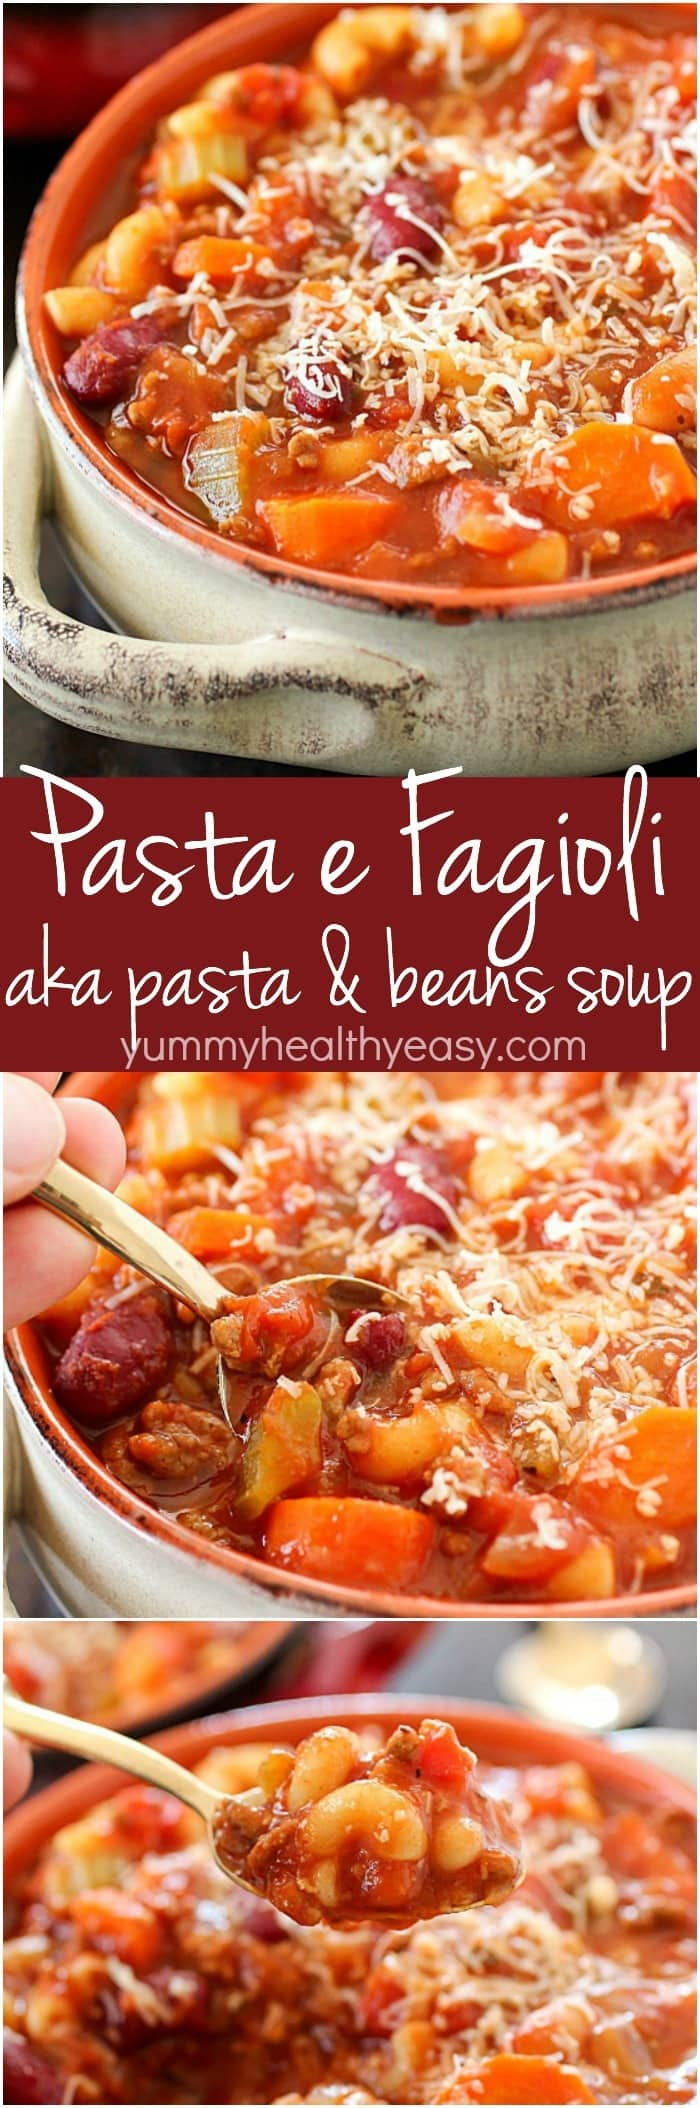 Pasta e Fagioli, which means pasta & beans in Italian, is a hearty & easy soup recipe full of beans, ground beef, a little bit of pasta and a lot of flavor! This Olive Garden copycat is a great dinner recipe for any night of the week!